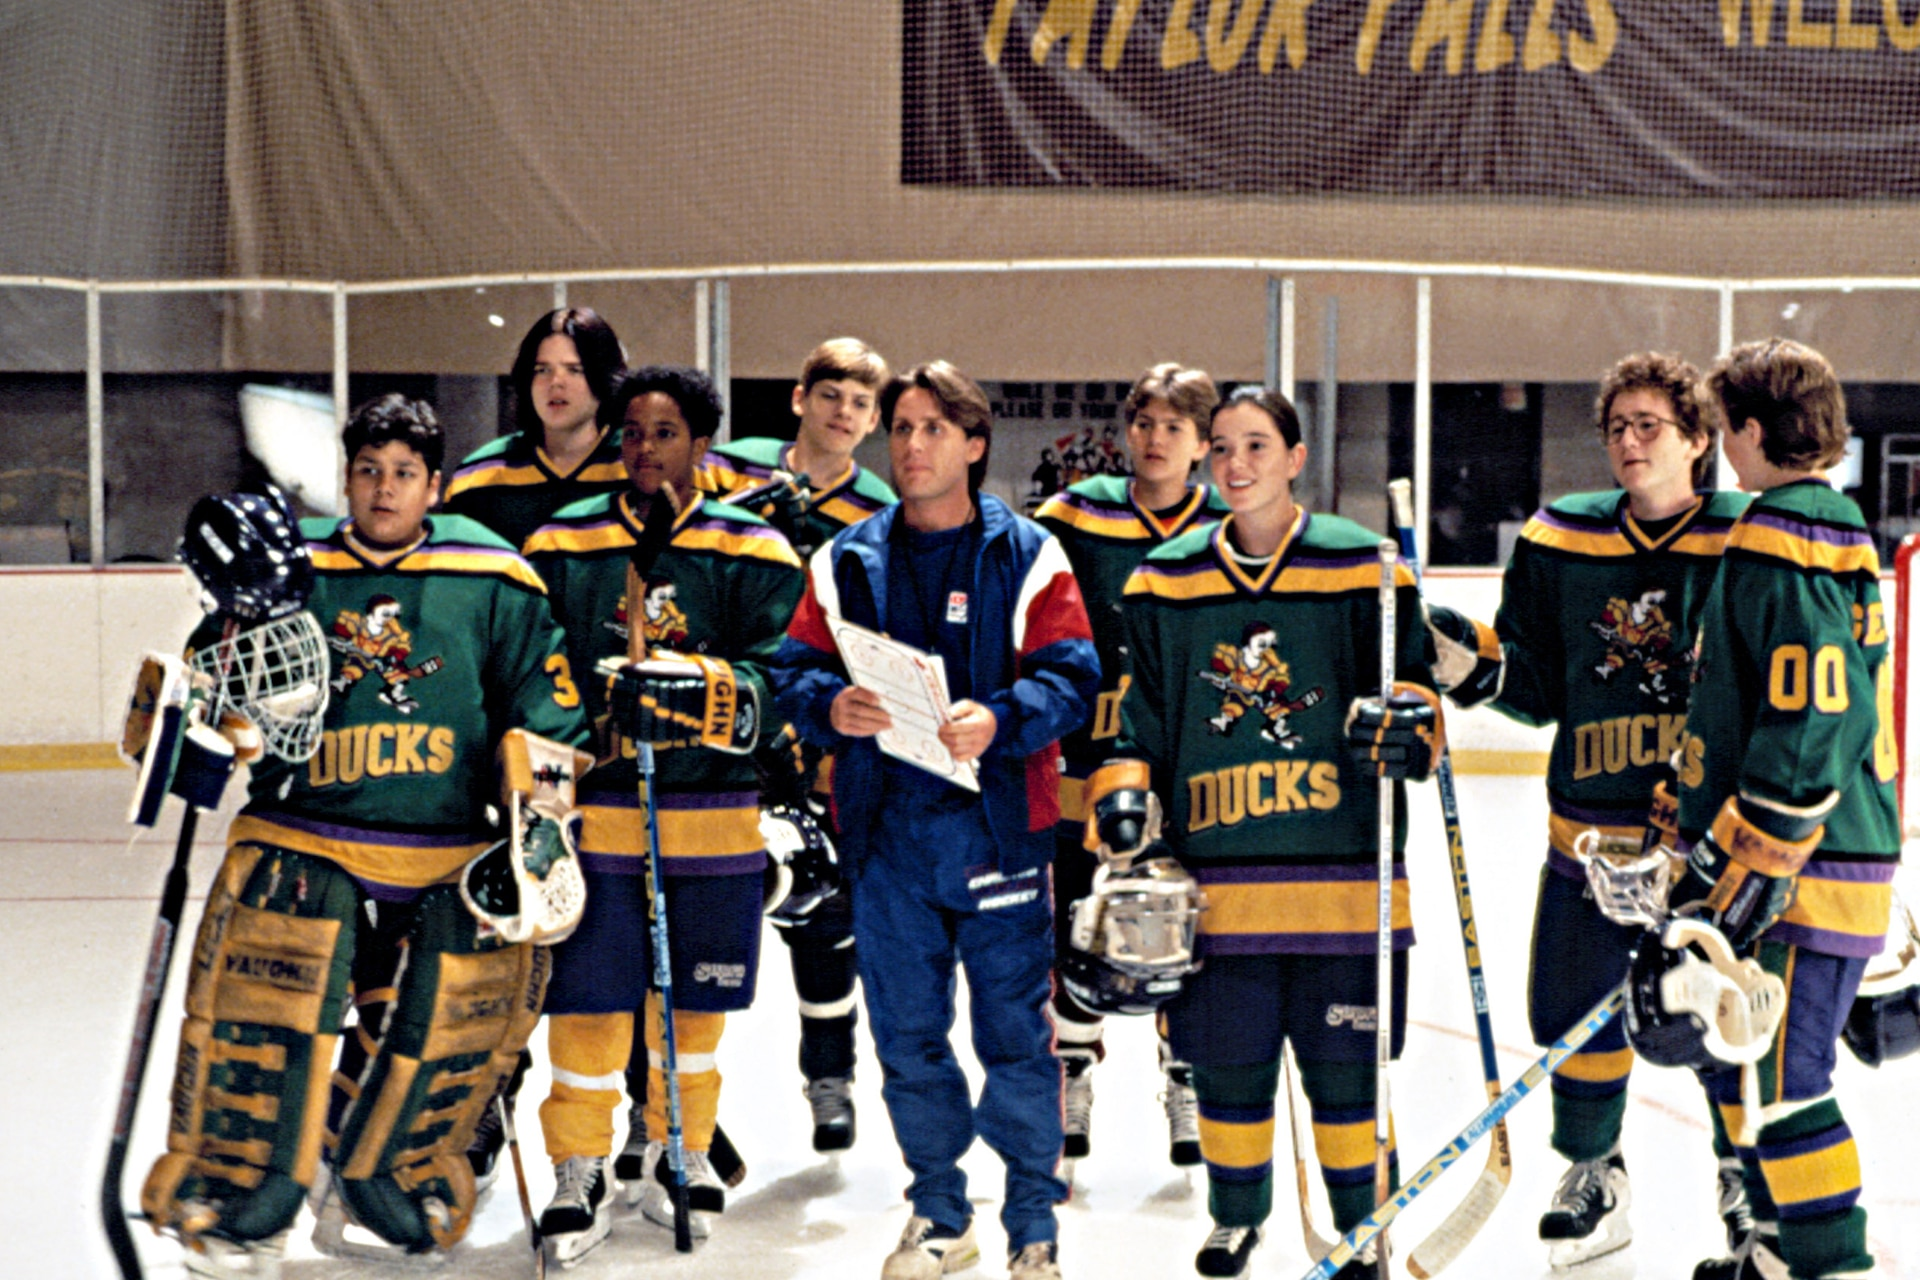 Disney+ Is Set To Cop A Mighty Ducks Reboot, And This Time, They're The Bad Guys